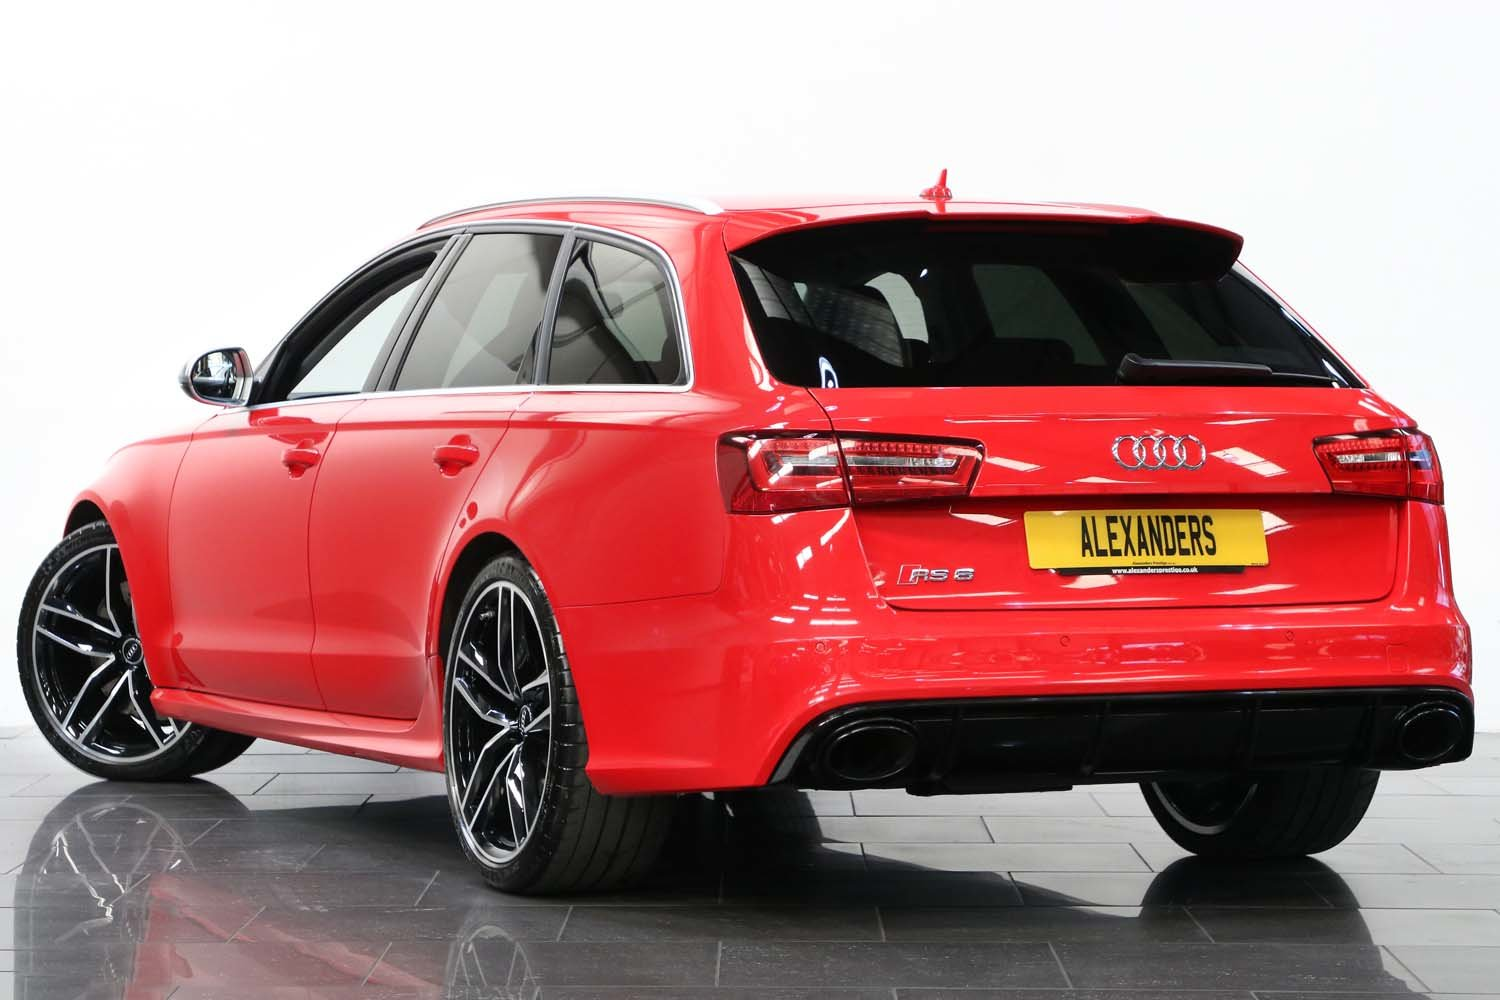 2014 14 64 AUDI RS6 AVANT 4.0T V8 FSI AUTO For Sale (picture 3 of 6)